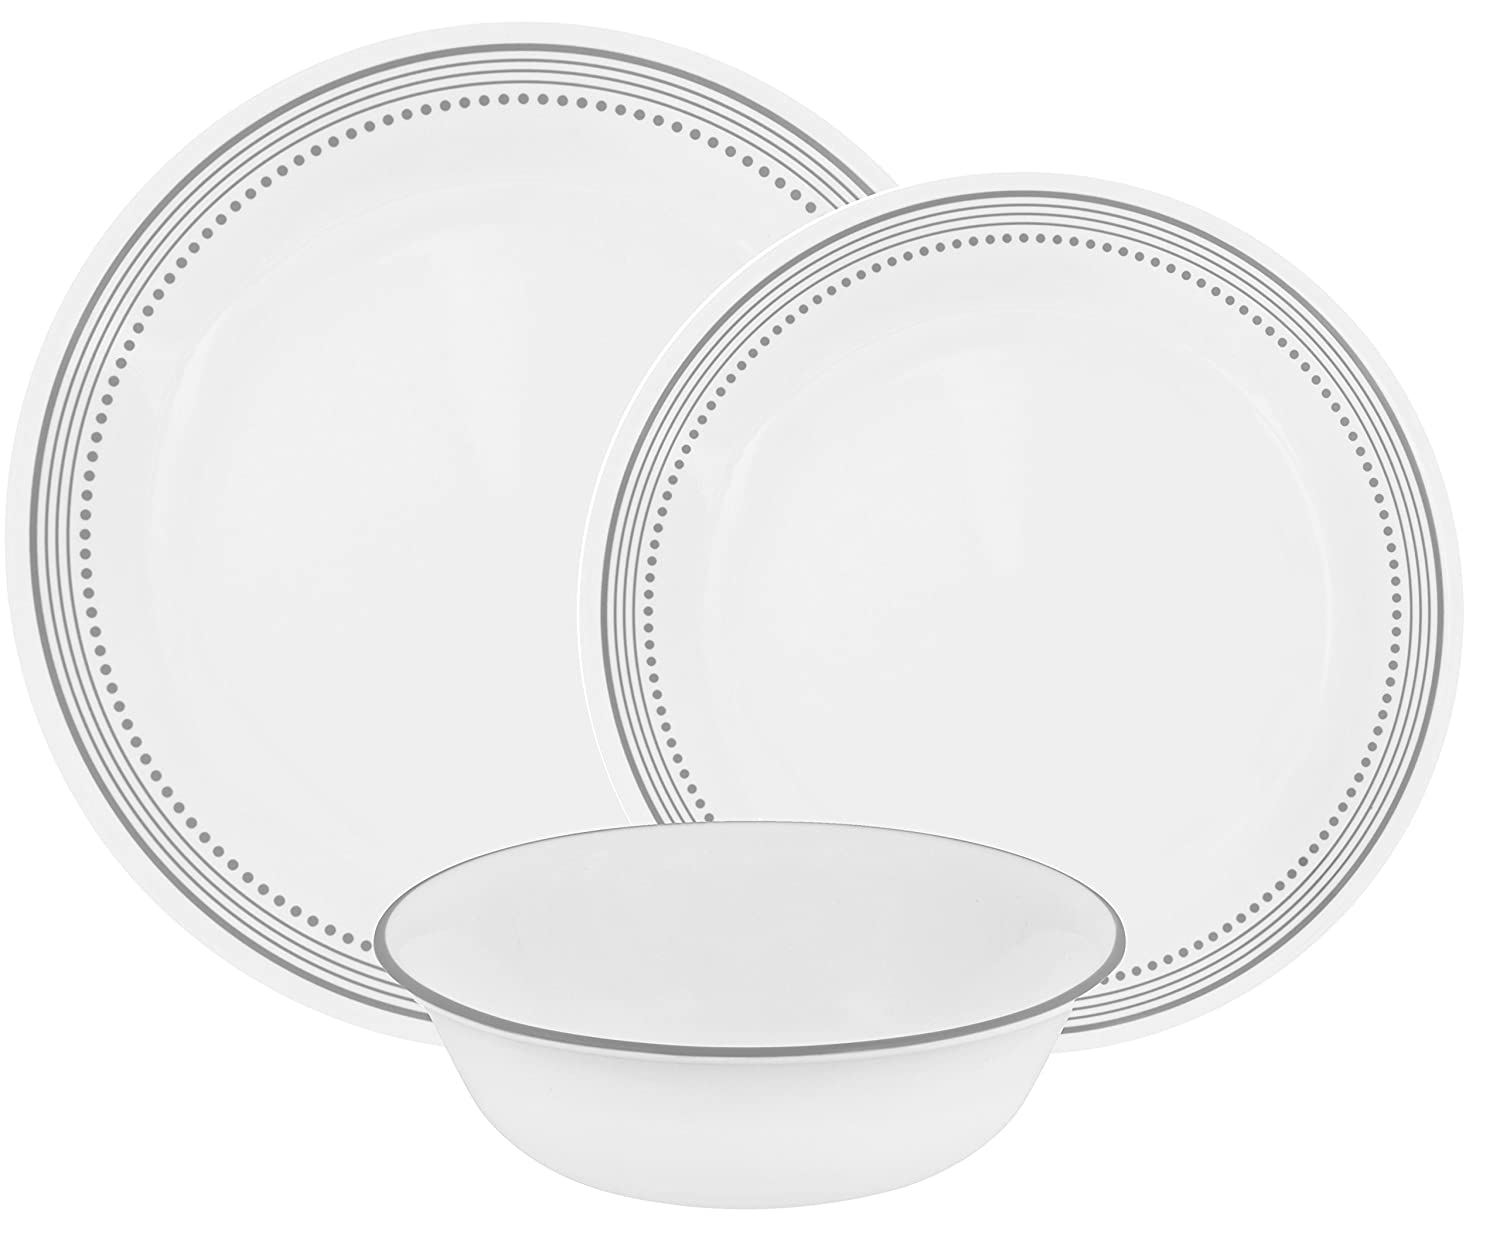 Corelle Mystic Gray Chip and Break Resistant Dinner Set for 4 Person, Grey, 12-Piece World Kitchen 1127003